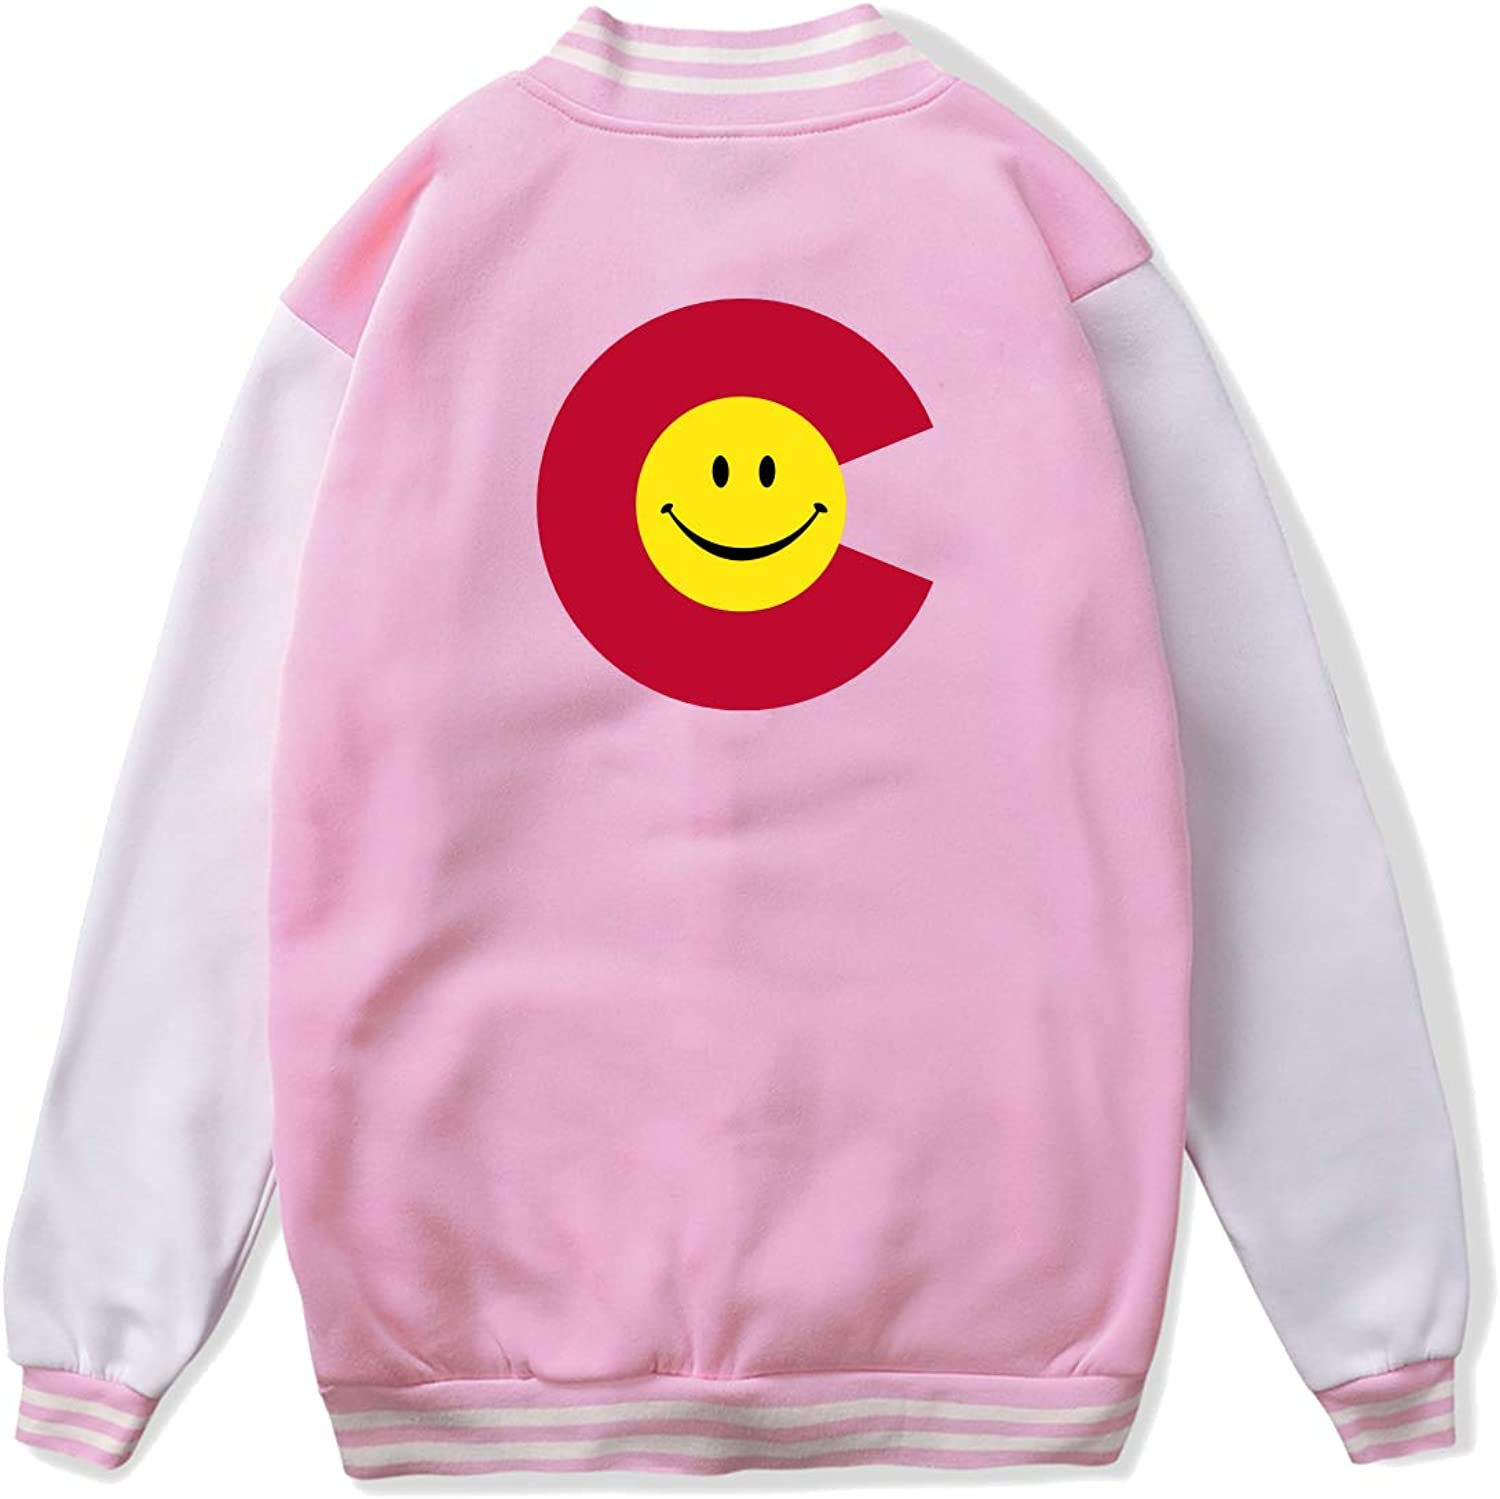 fc0778625fb colorado Flag Smiley Face Unisex Jacket Jacket Jacket Coat f6b5e6 ...